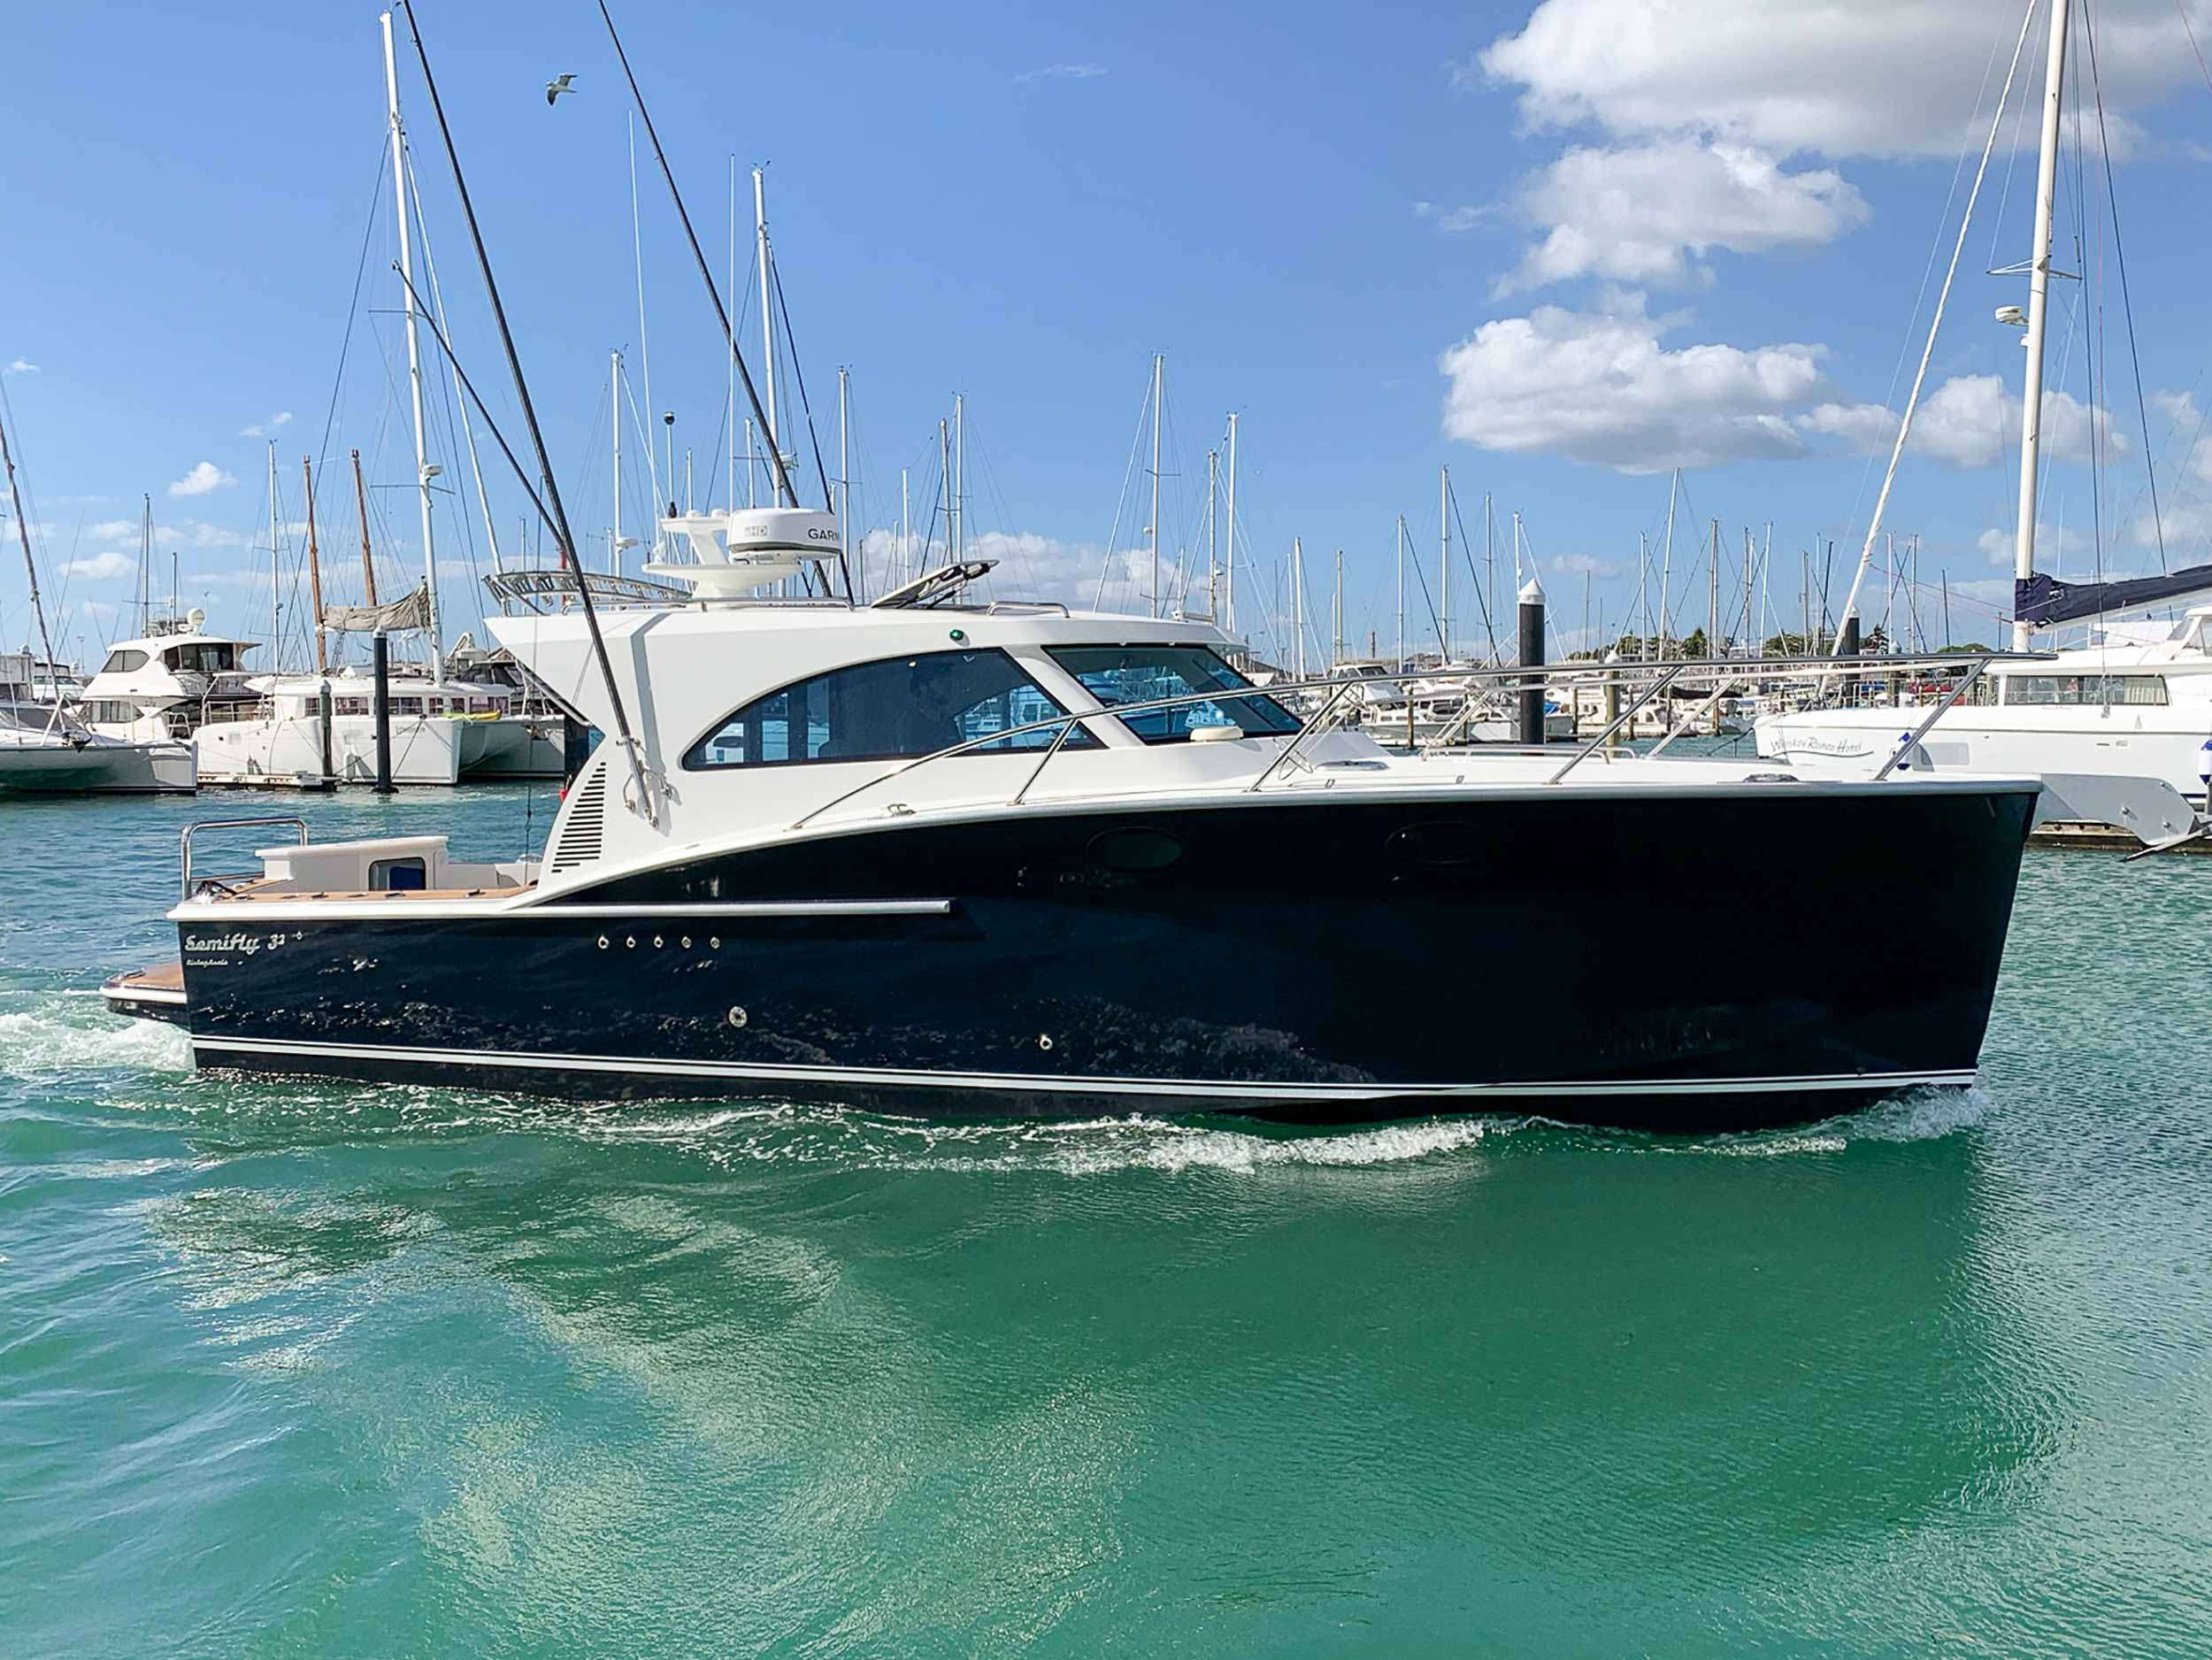 Pre-Owned Semifly 32